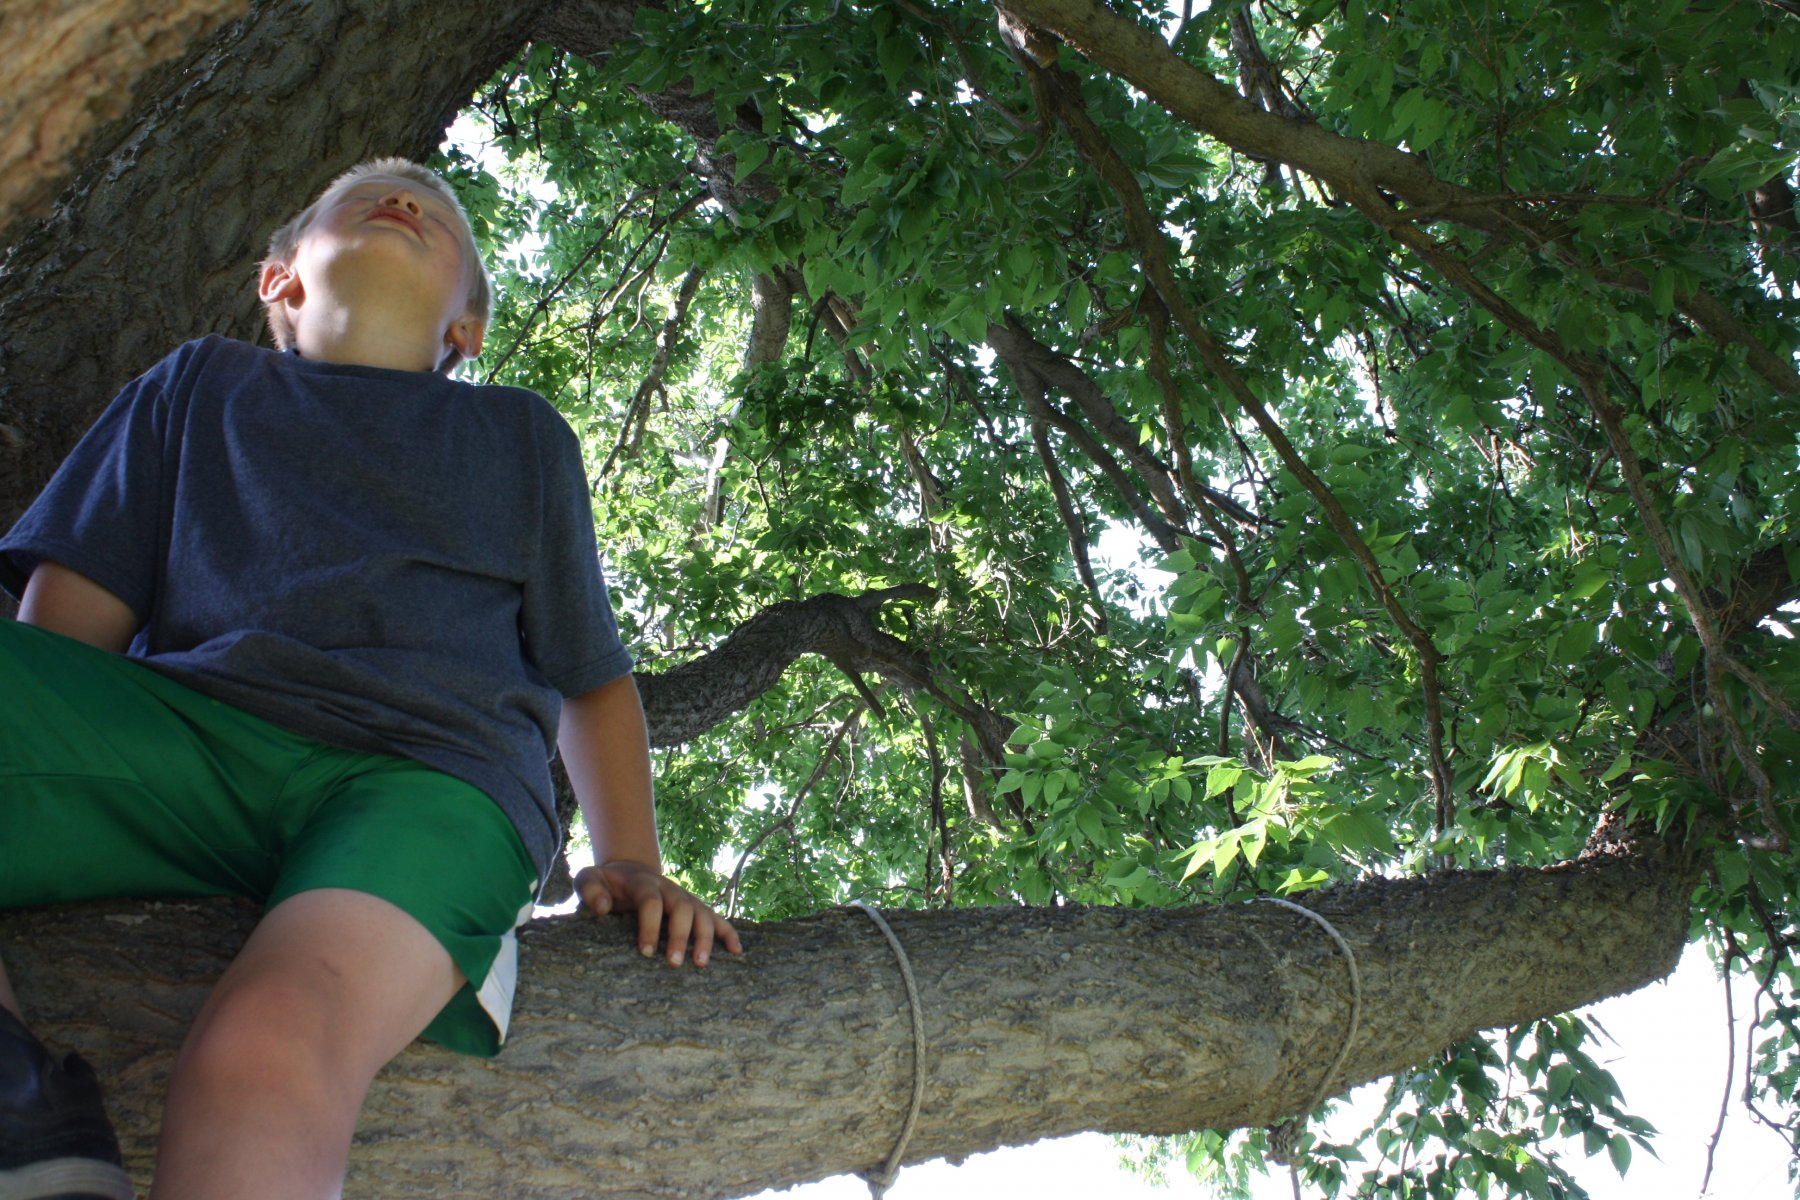 A child gazes into tree canopy above.